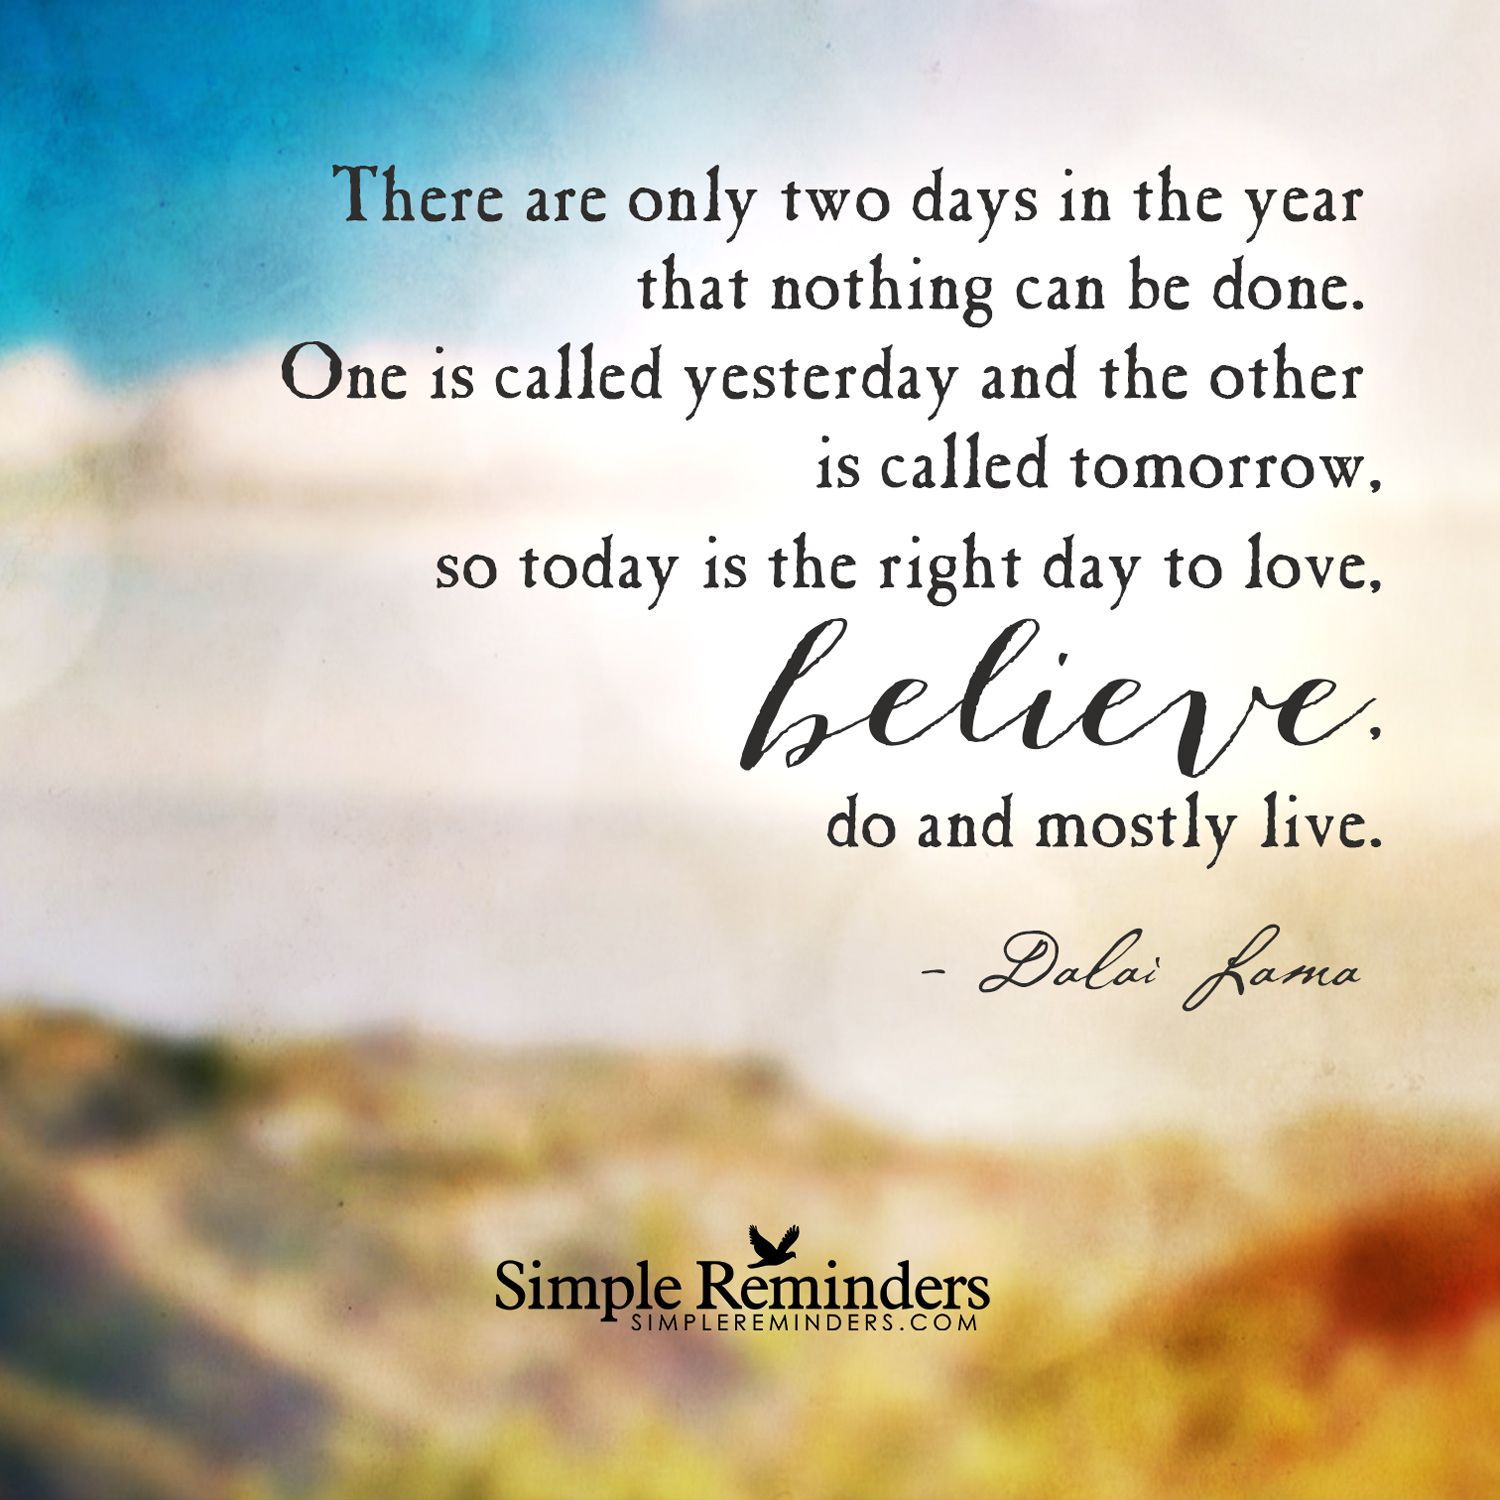 Image result for dalai lama quotes on going slowly